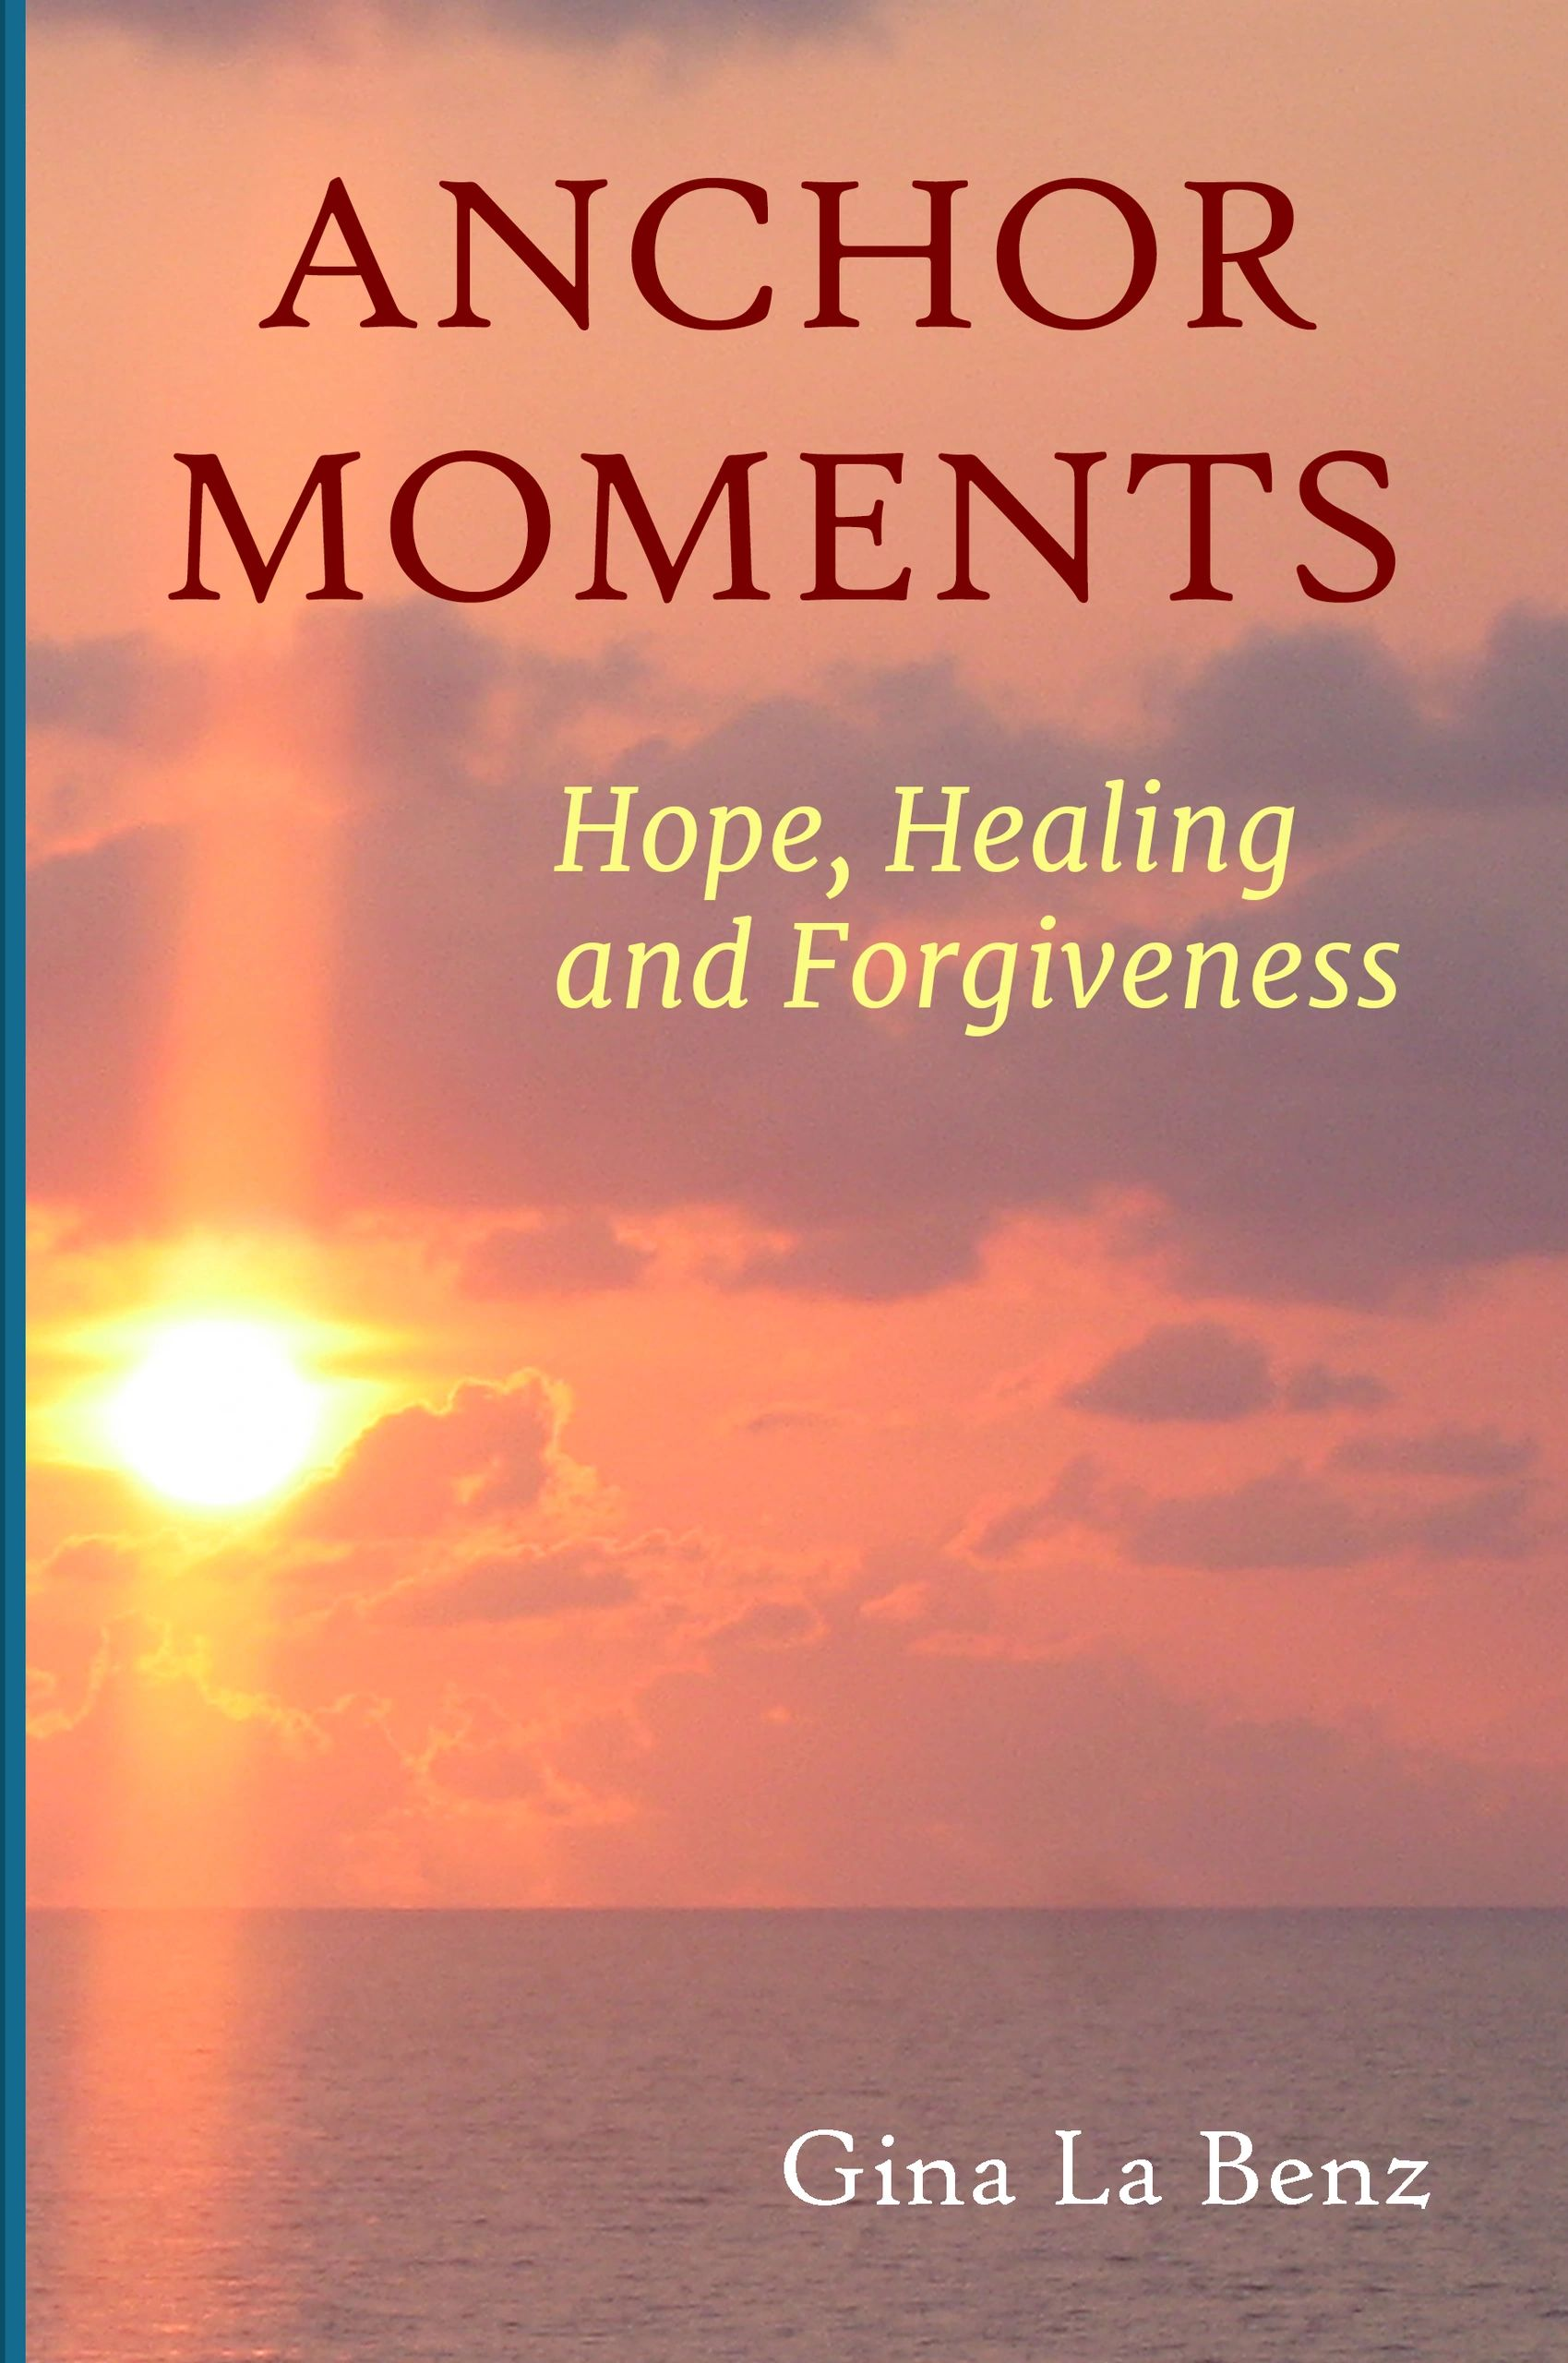 Anchor Moments: Hope, Healing and Forgiveness -- available now on Amazon.